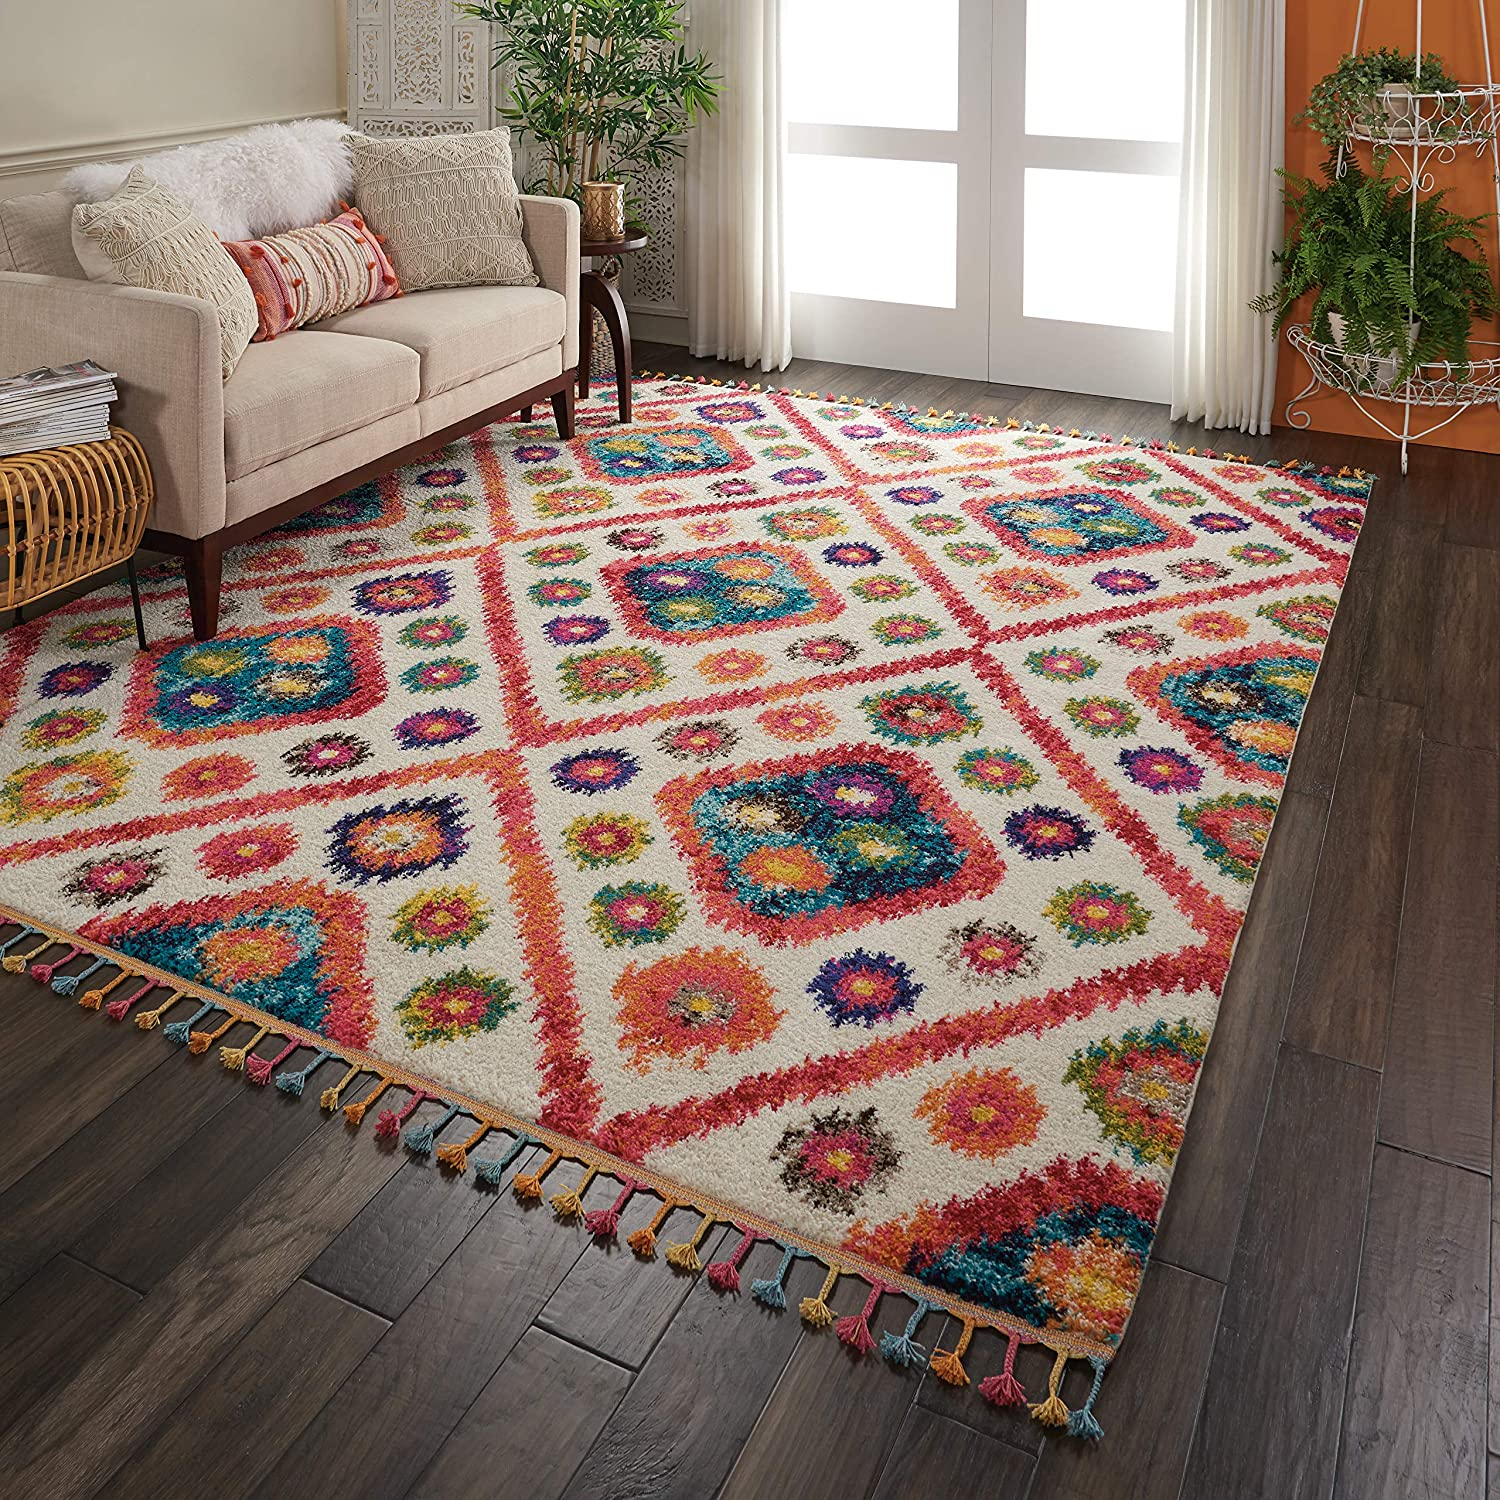 Colorful patterned rug with tassels.